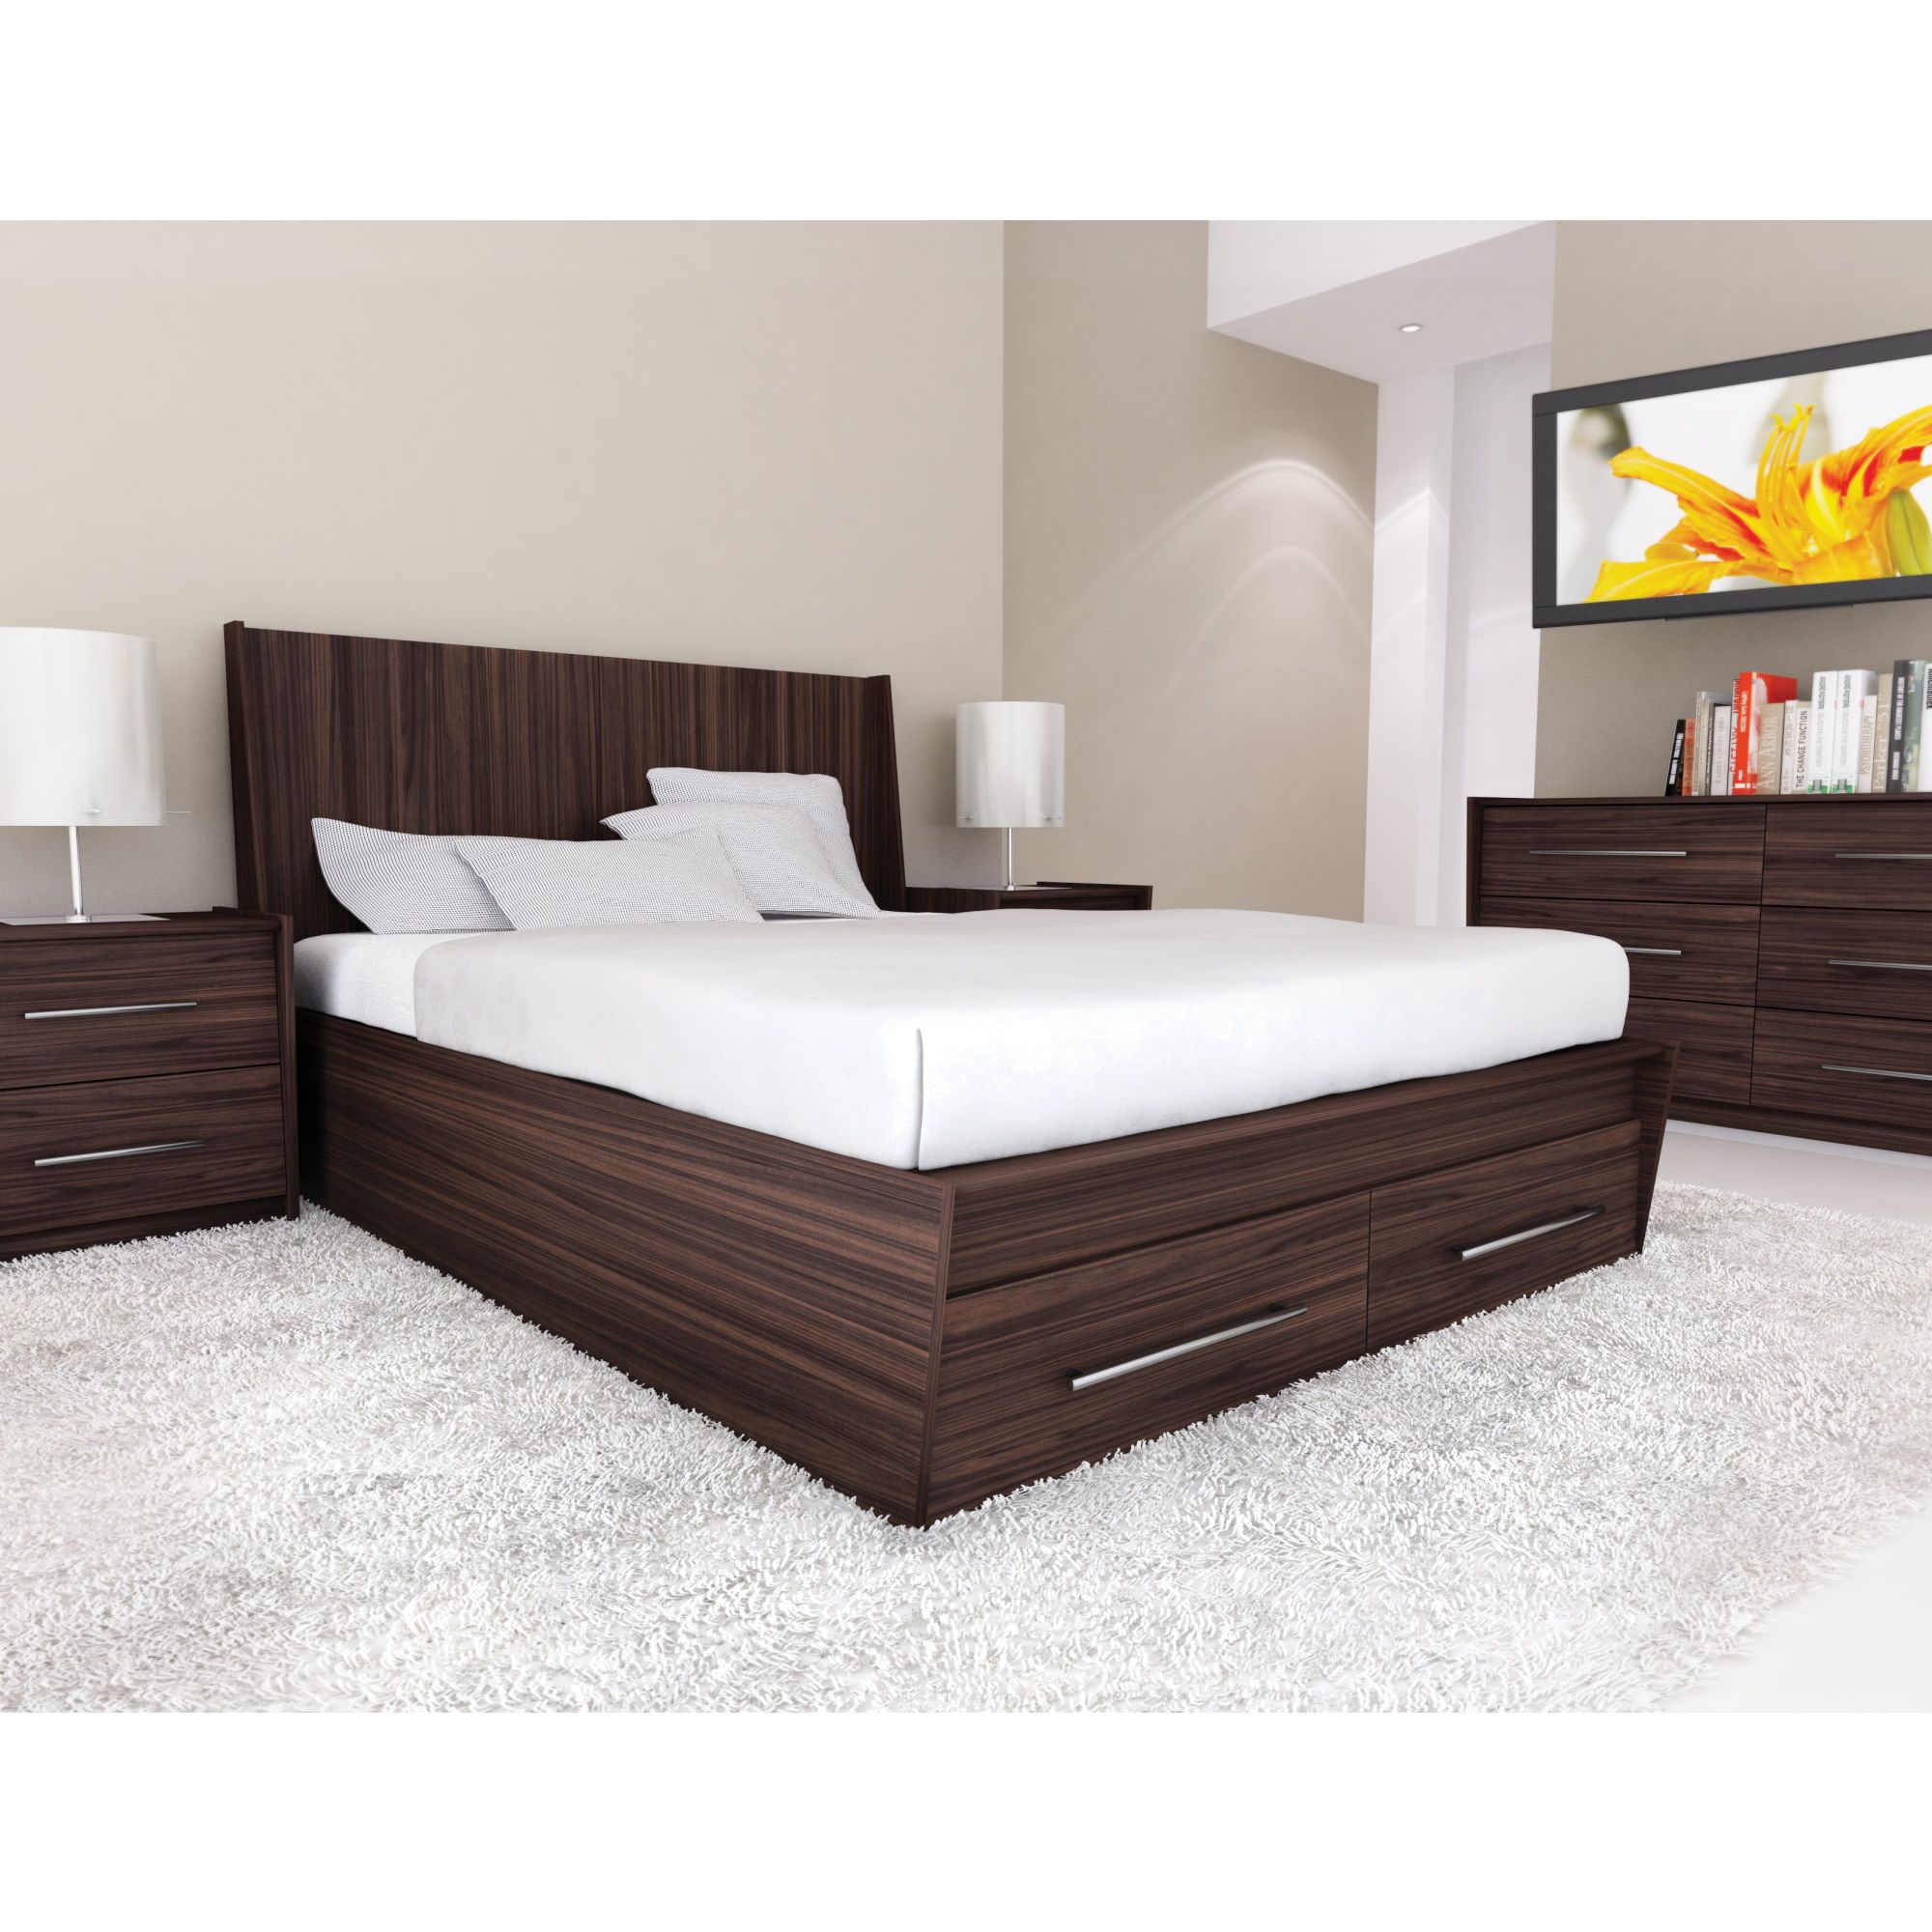 Bed designs for your comfortable bedroom interior design for Double bed with box design